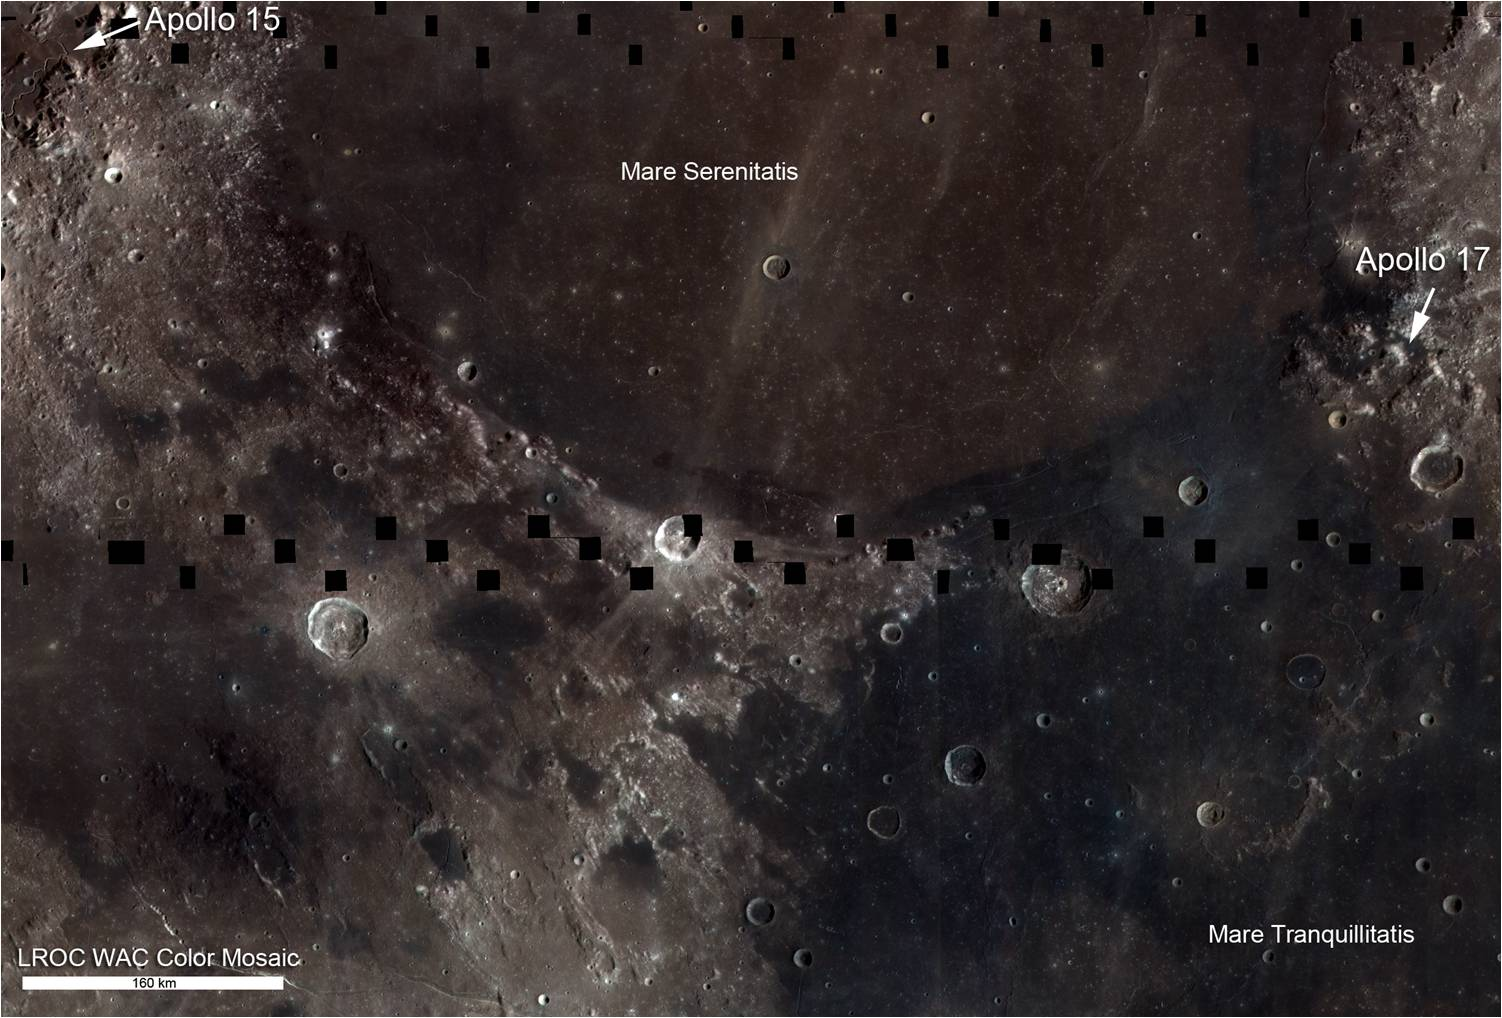 A map of the moon shows presence of anium | Space | EarthSky Map Moon on ganymede map, neptune map, titan map, surreal map, pluto map, saturn map, sun map, earth map, neil armstrong, lunar cycle map, blue moon, jupiter map, uranus map, outland map, star map, mercury map, io map, statue map, the ship map, solar system, microscope map, mars map, black hole map,